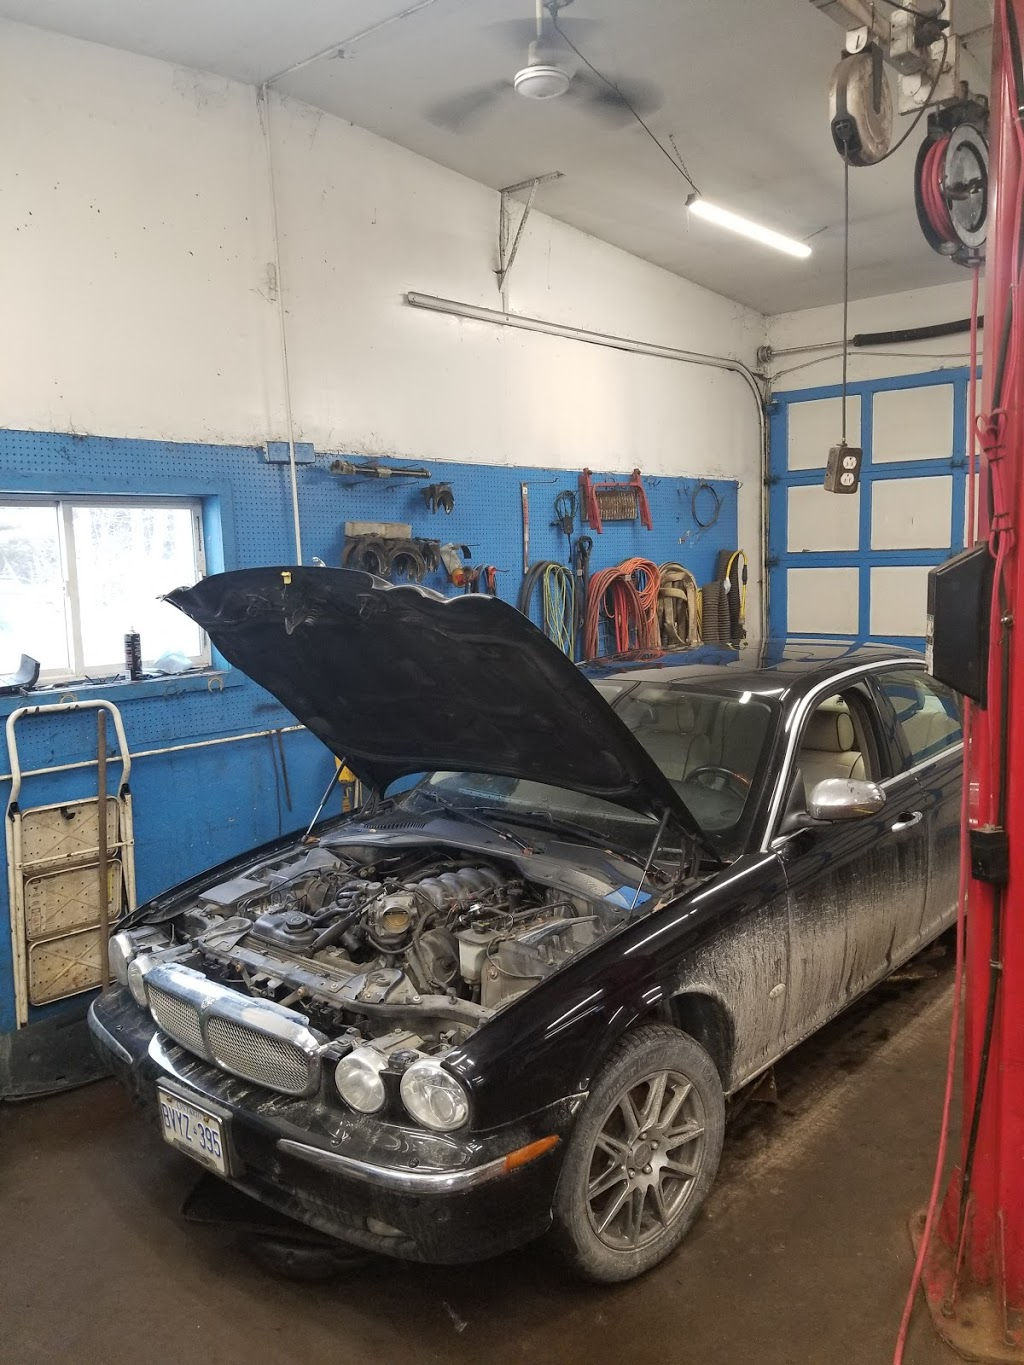 Marks Motors | car repair | 18314 Humber Station Rd, Caledon East, ON L7E 0Z5, Canada | 9058800157 OR +1 905-880-0157